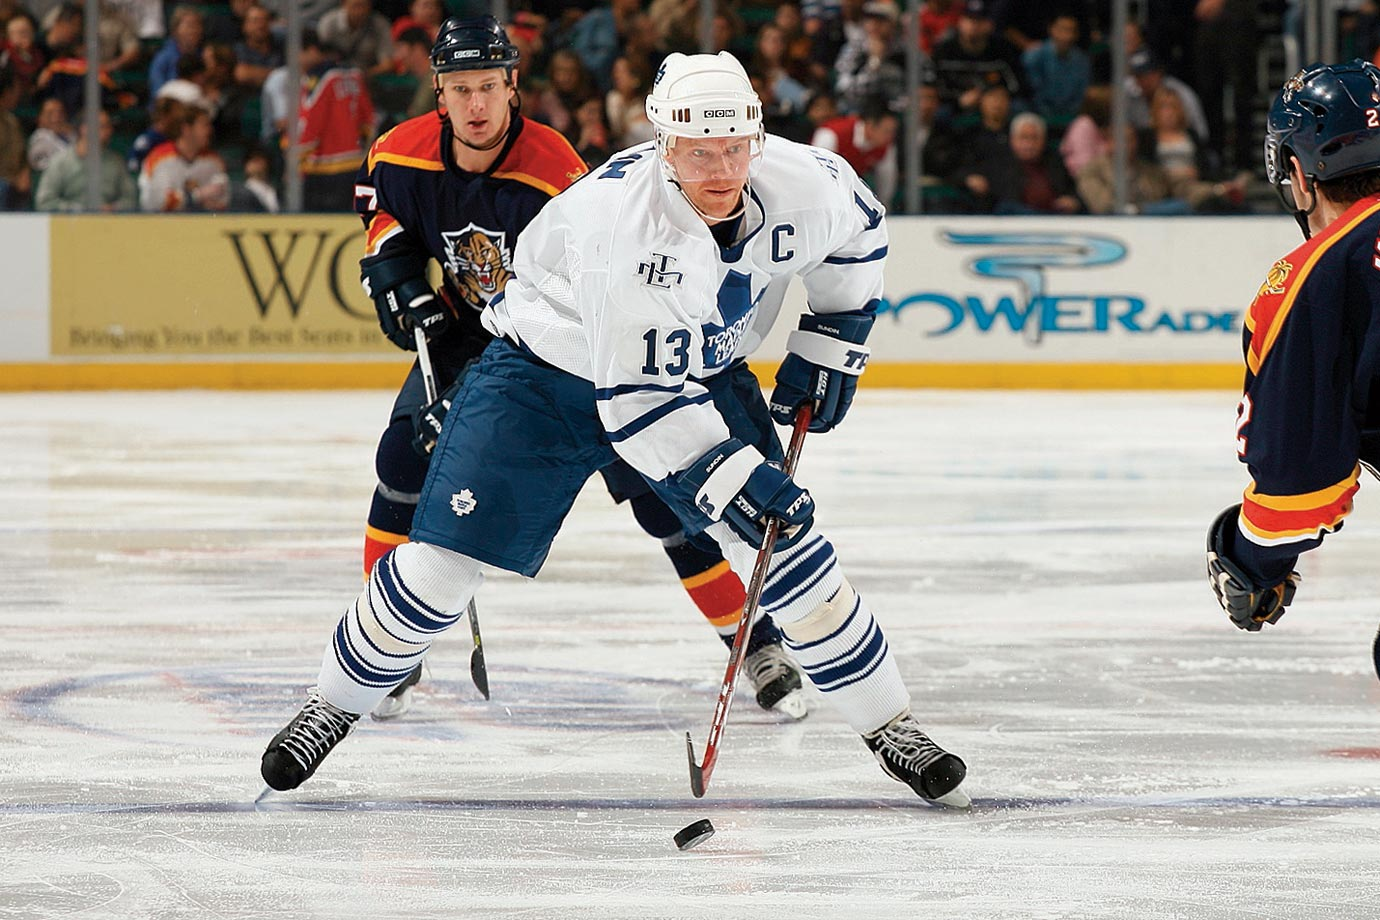 An NHL and international great who played 18 seasons with Quebec, Toronto and Vancouver, Sundin ranks in the Top 25 all time in goals and is No. 27 on the all-time points list with 1,349. The Swede was named to eight All-Star Games and he helped lead his country to gold at the 2006 Turin Olympics.